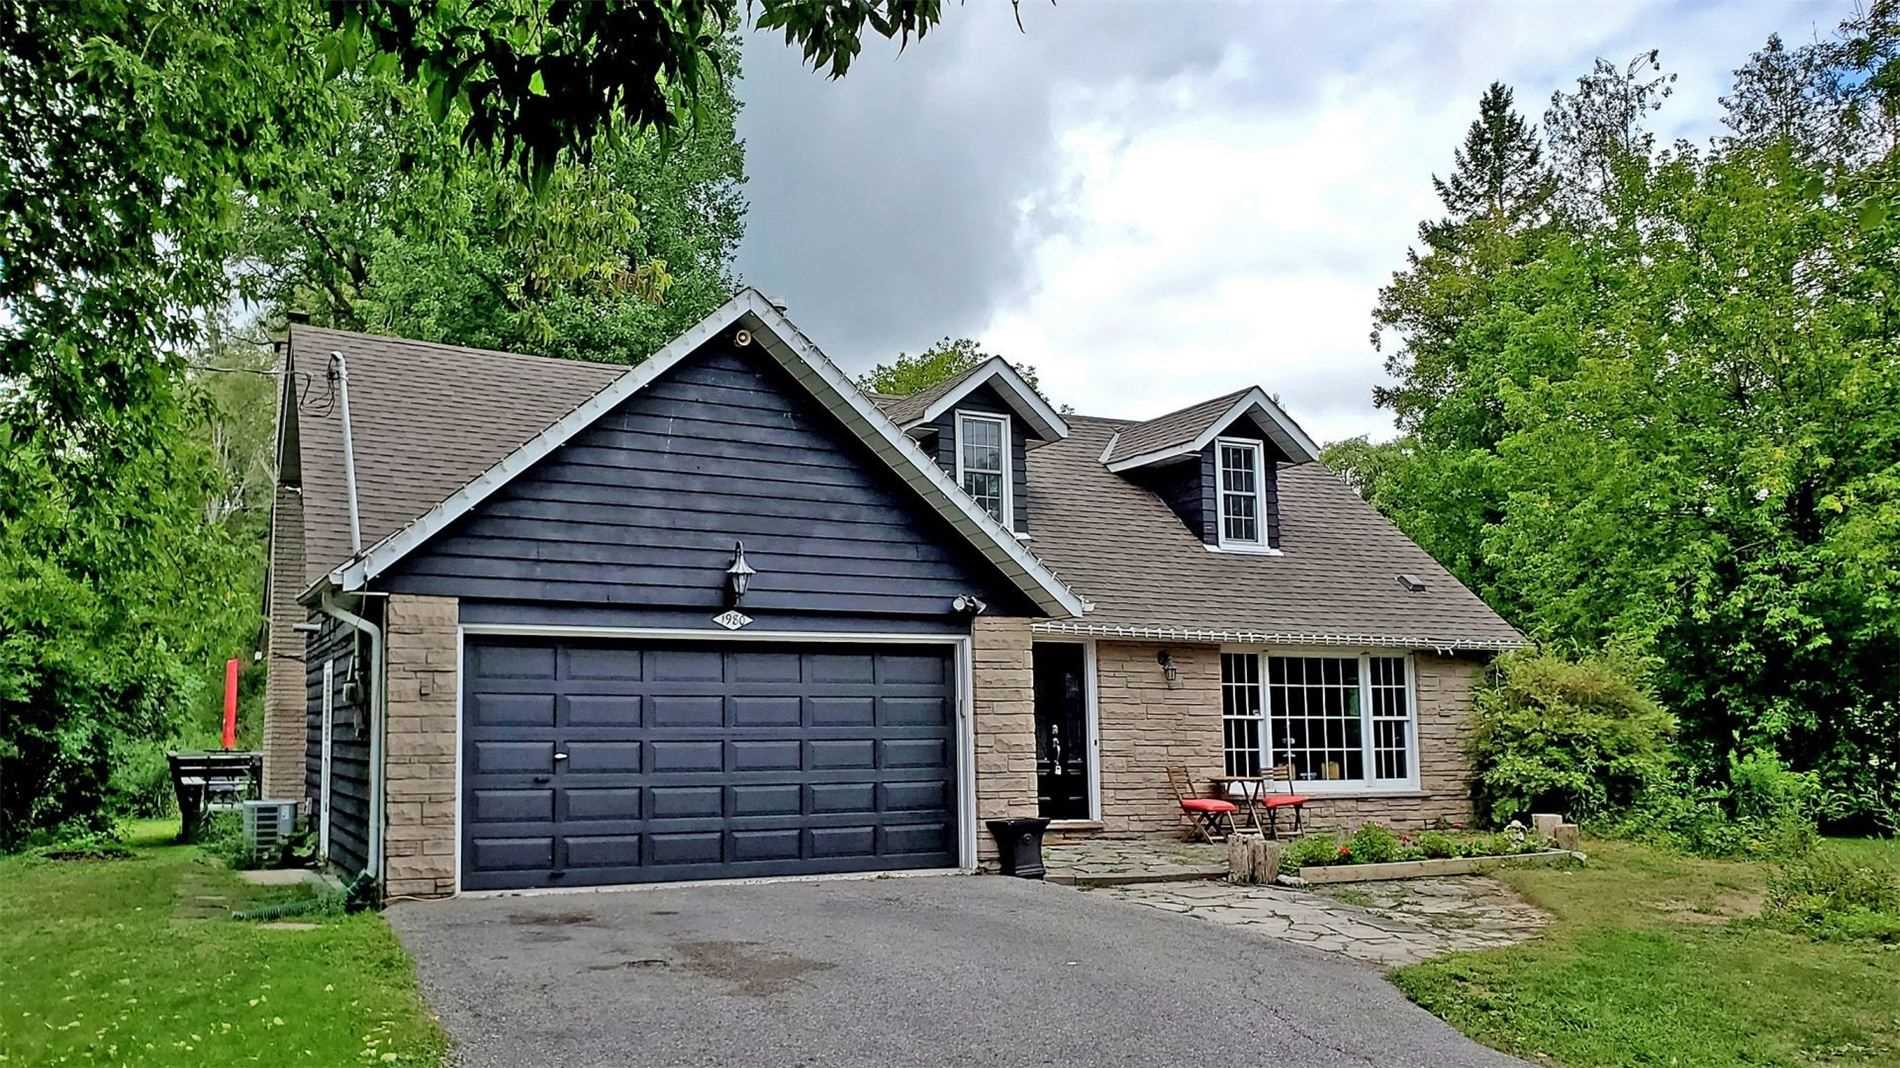 Country Living In The City. This 4 Bedroom Home Situated On Premium Lot 125 X 150 Ft Surrounded By Acres Of Conservation And Million $$$ Homes,  Hardwood Floors Throughout, Private And Entertainer's Backyard. Great Opportunity For Builders/Investors, Build A Big Home Or Potential Sever The Lot. Buyer Responsible For Due Diligence. Minute Commute To Hwy 401, Go Station, Schools, Parks, Shopping. Walking Trails Through Rouge Valley.